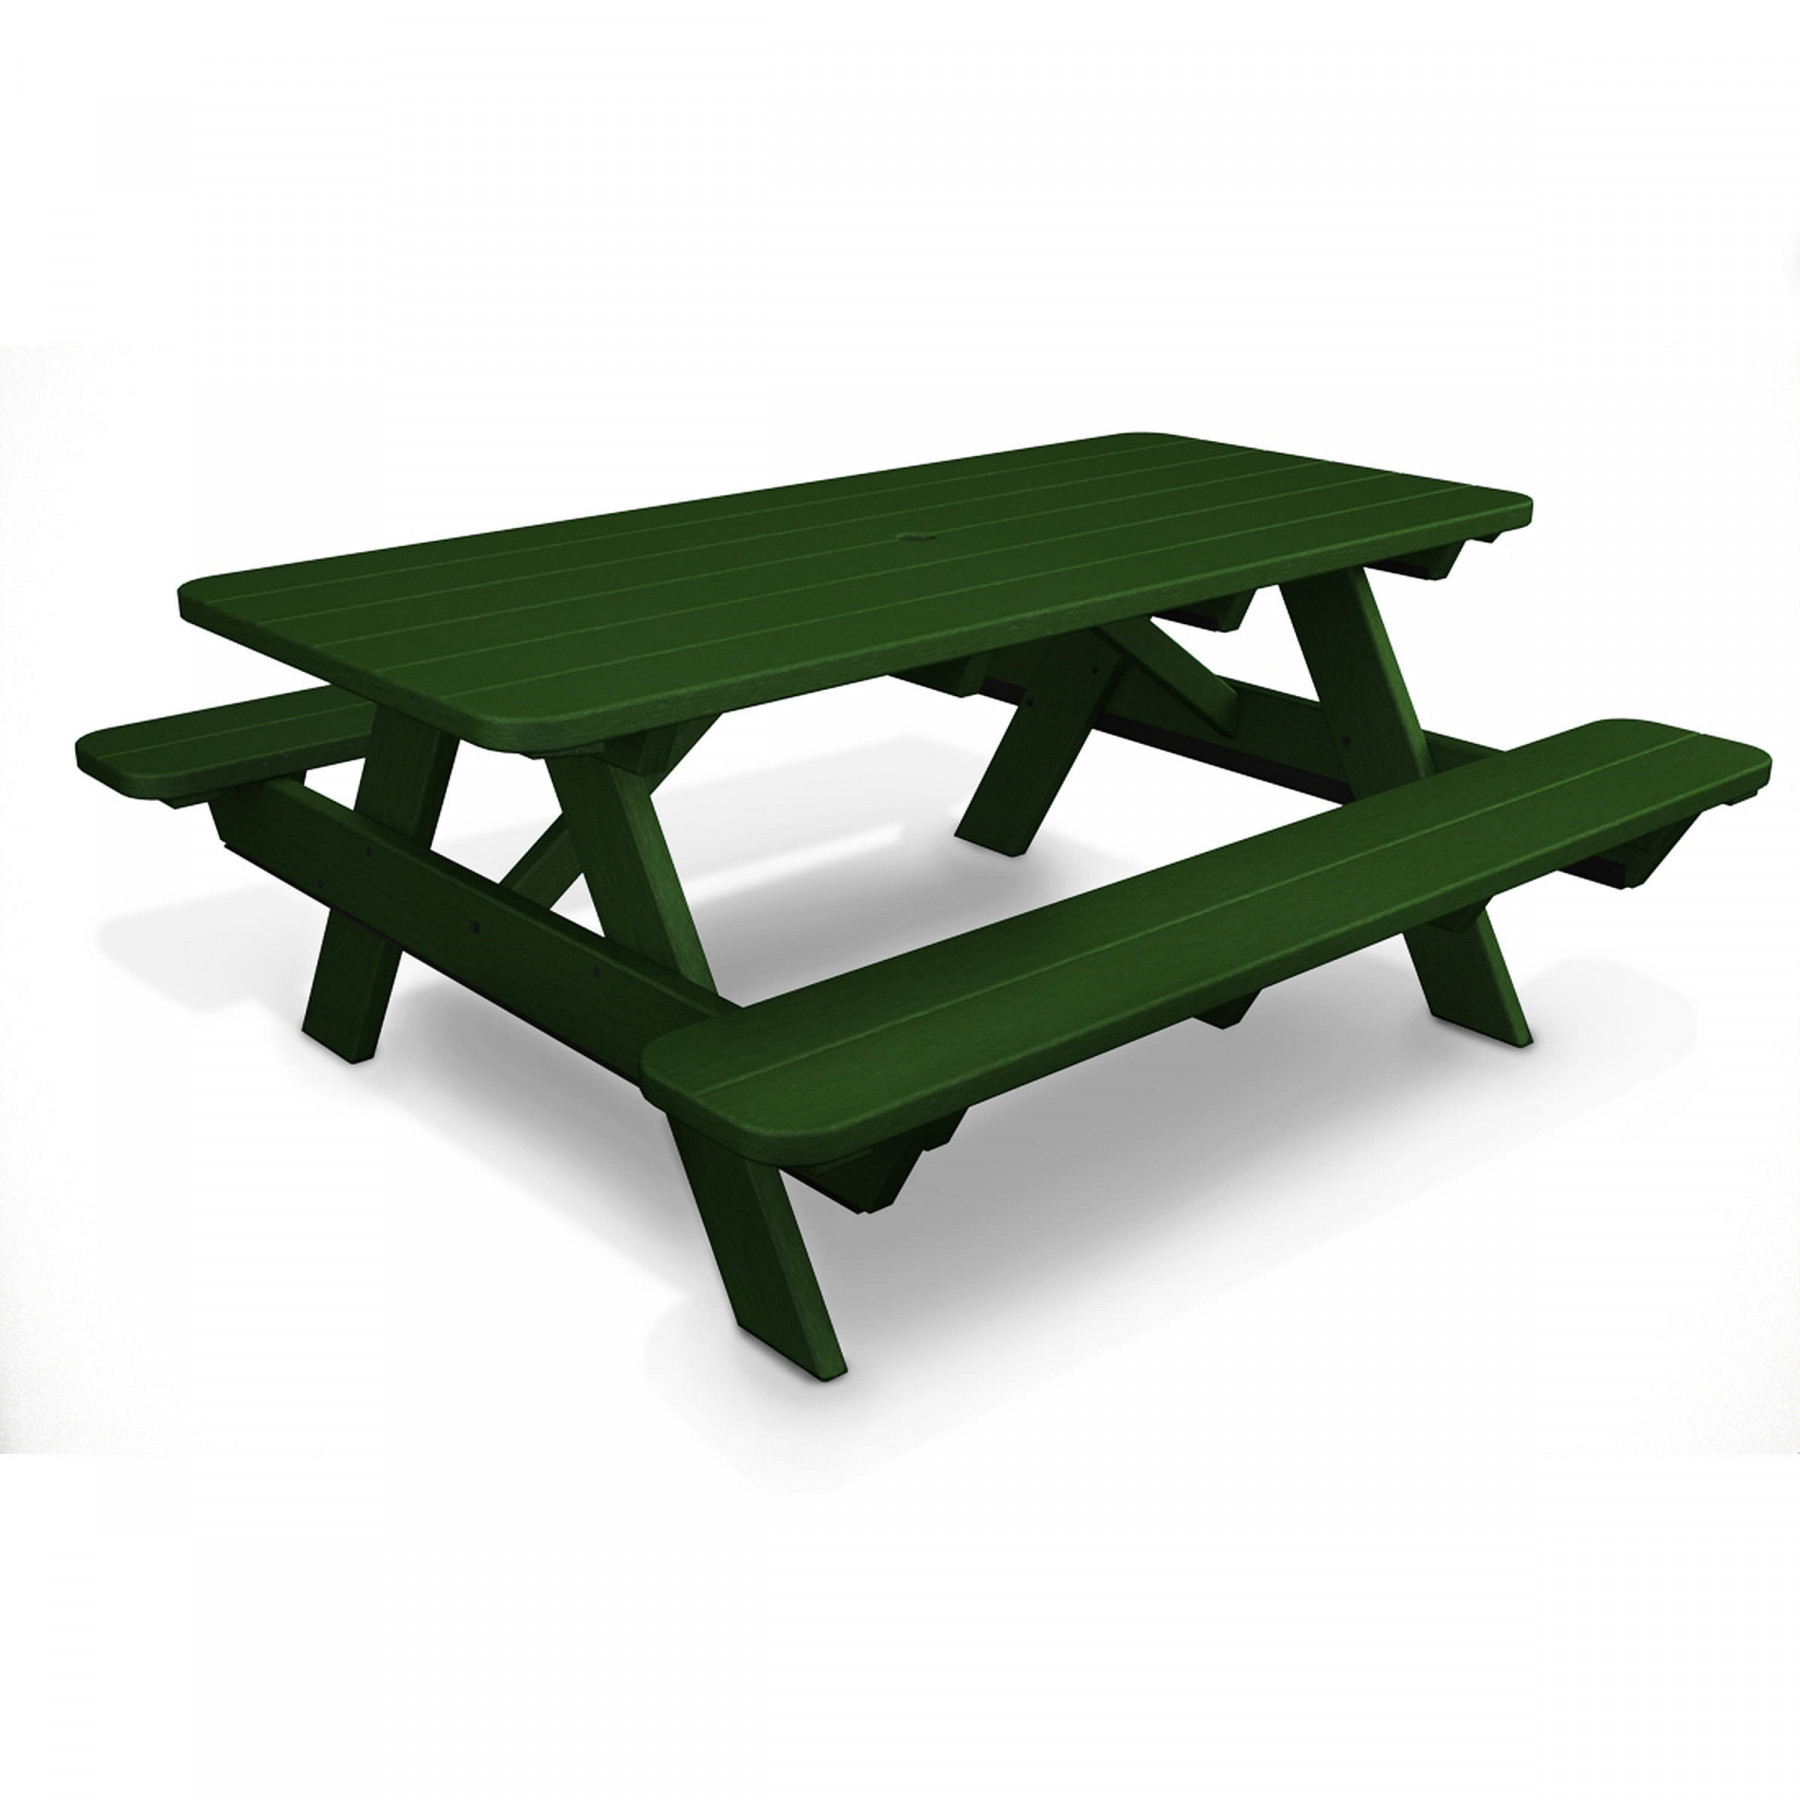 Superbe POLYWOOD 72 In Commercial Picnic Table. PrevNext